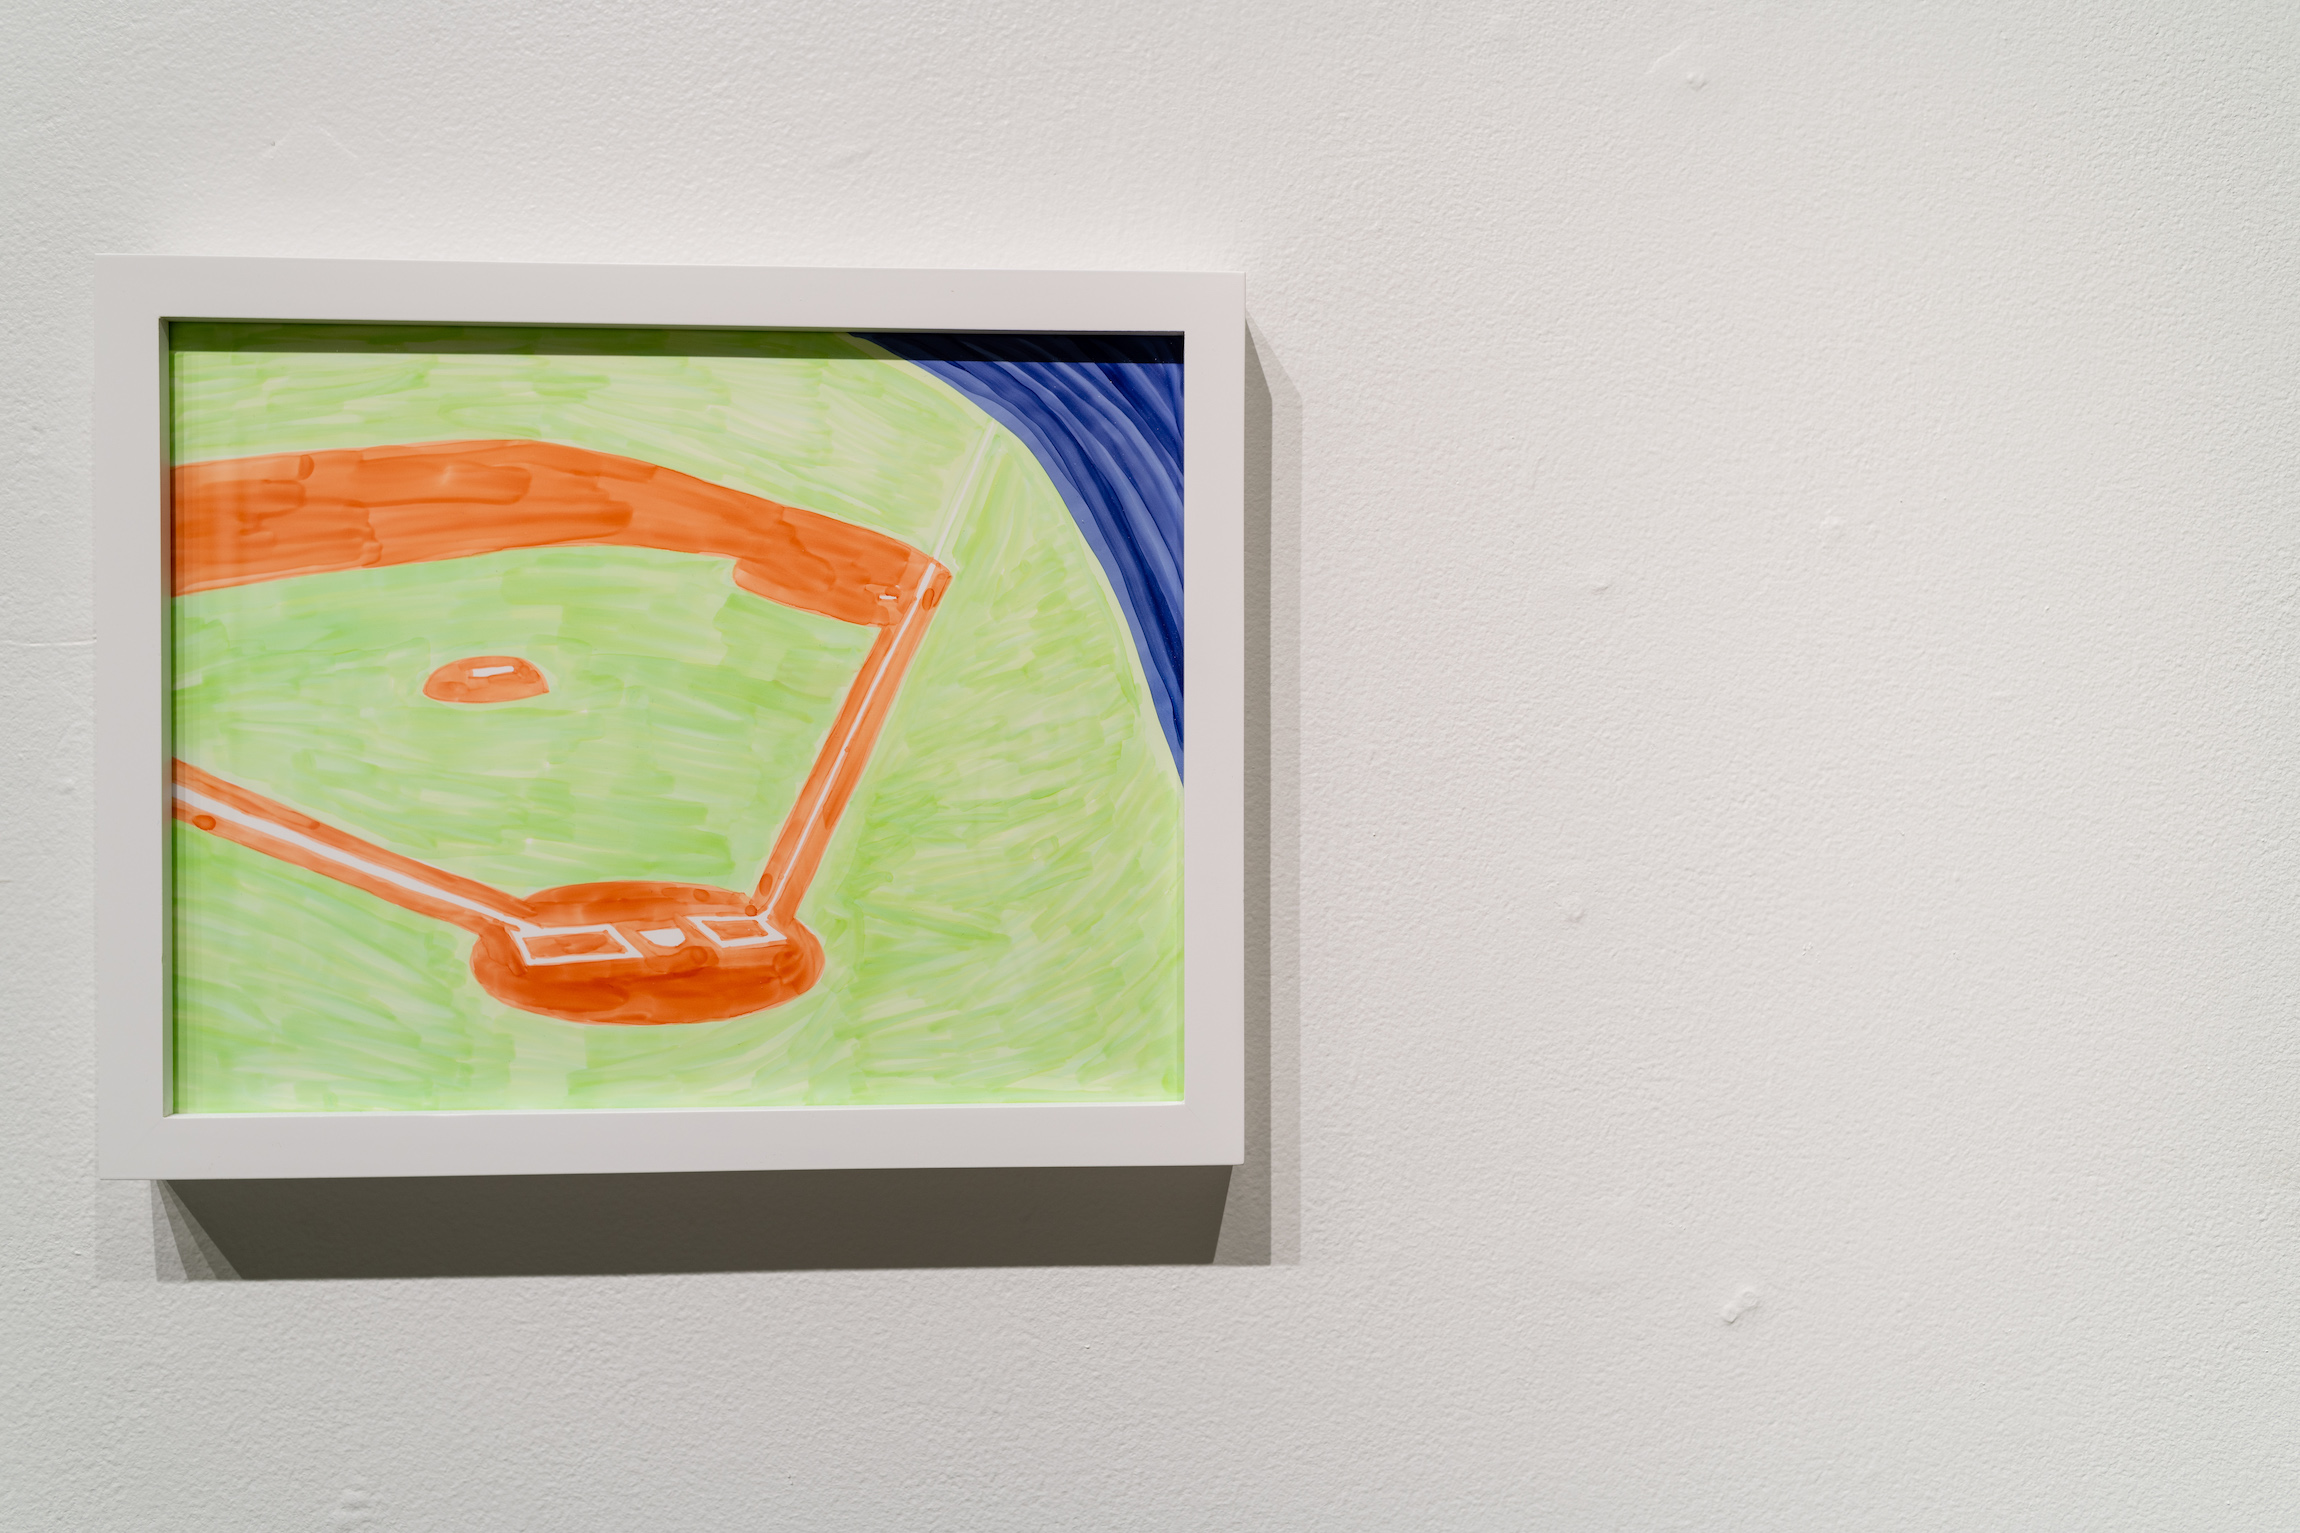 """Infield,"" Marker on yupo paper, 2019, from James Pederson's Master of Fine Arts exhibition Rules of Engagement at the Gallery 7 of the Humanities Building, University of Wisconsin-Madison. Photography by Kyle Herrera. from James Pederson's Master of Fine Arts exhibition Rules of Engagement at the Gallery 7 of the Humanities Building, University of Wisconsin-Madison. Photography by Kyle Herrera."